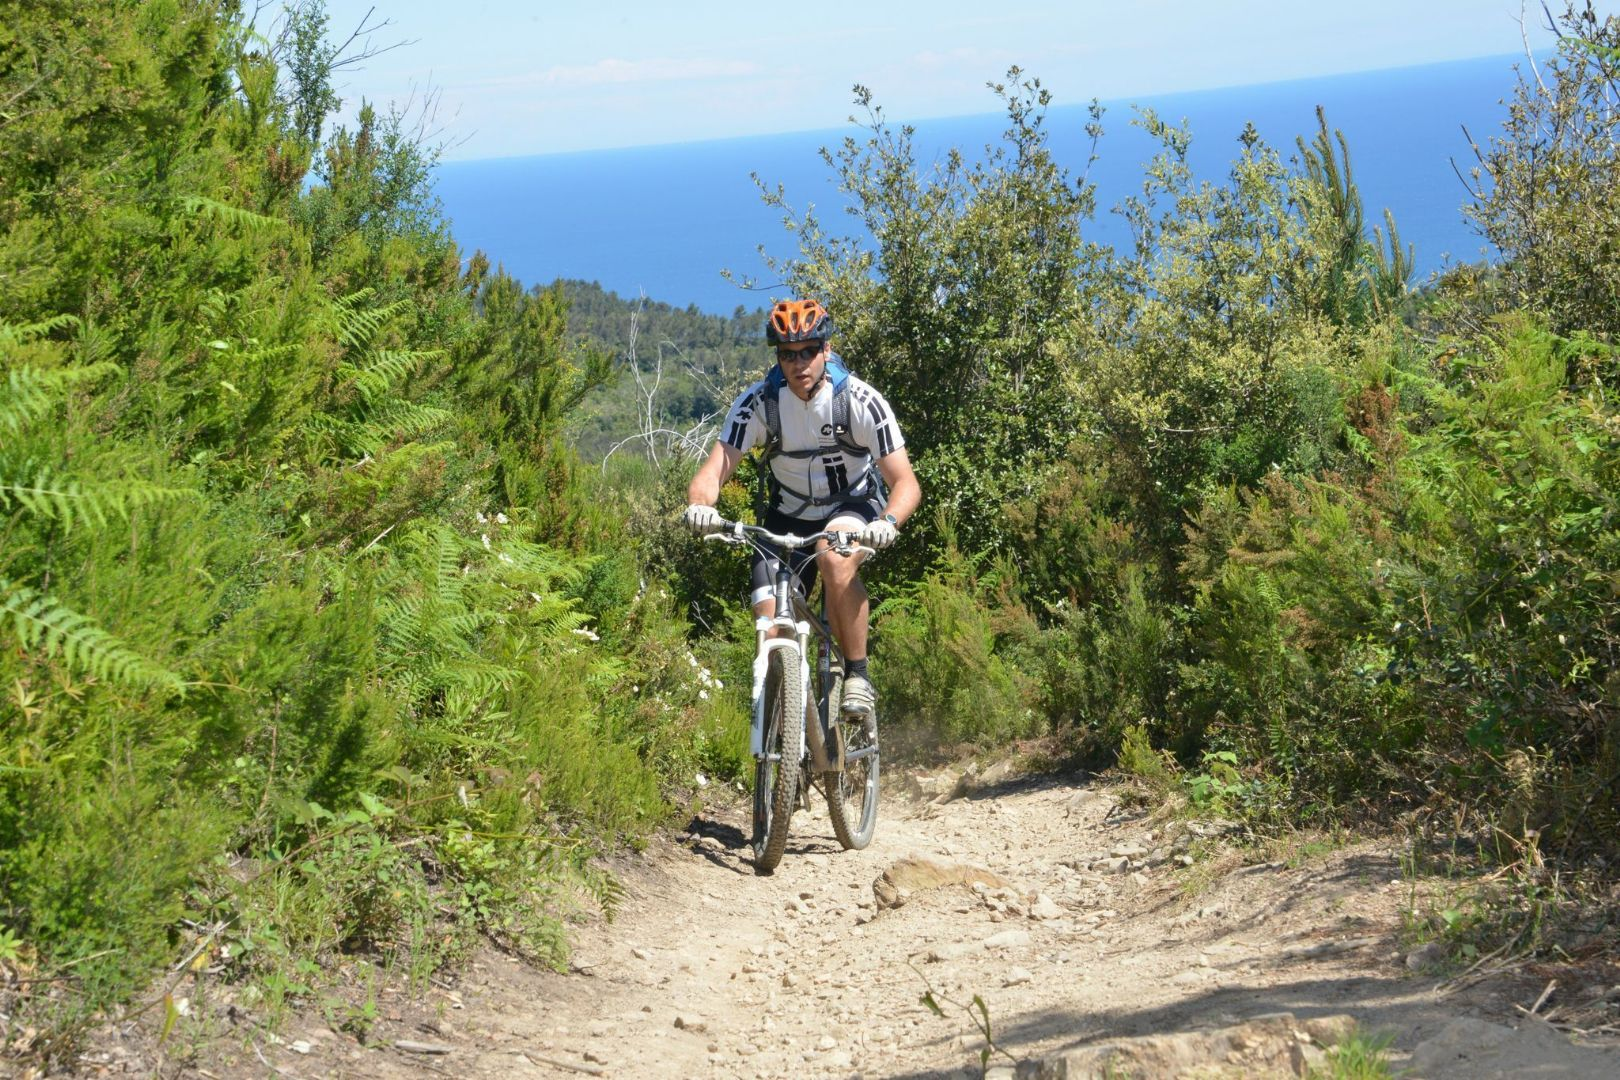 efVnVe4iU5sCZm4HoERYYn6oz_nZI6m2XwHDizpXKzM,o8SHoh6M-ysWuQ56-3ZEpPBXJ2yZwKSRIbtHiKe__zg.jpg - Italy - Liguria - Riding the Riviera - Guided Mountain Bike Holiday - Italia Mountain Biking